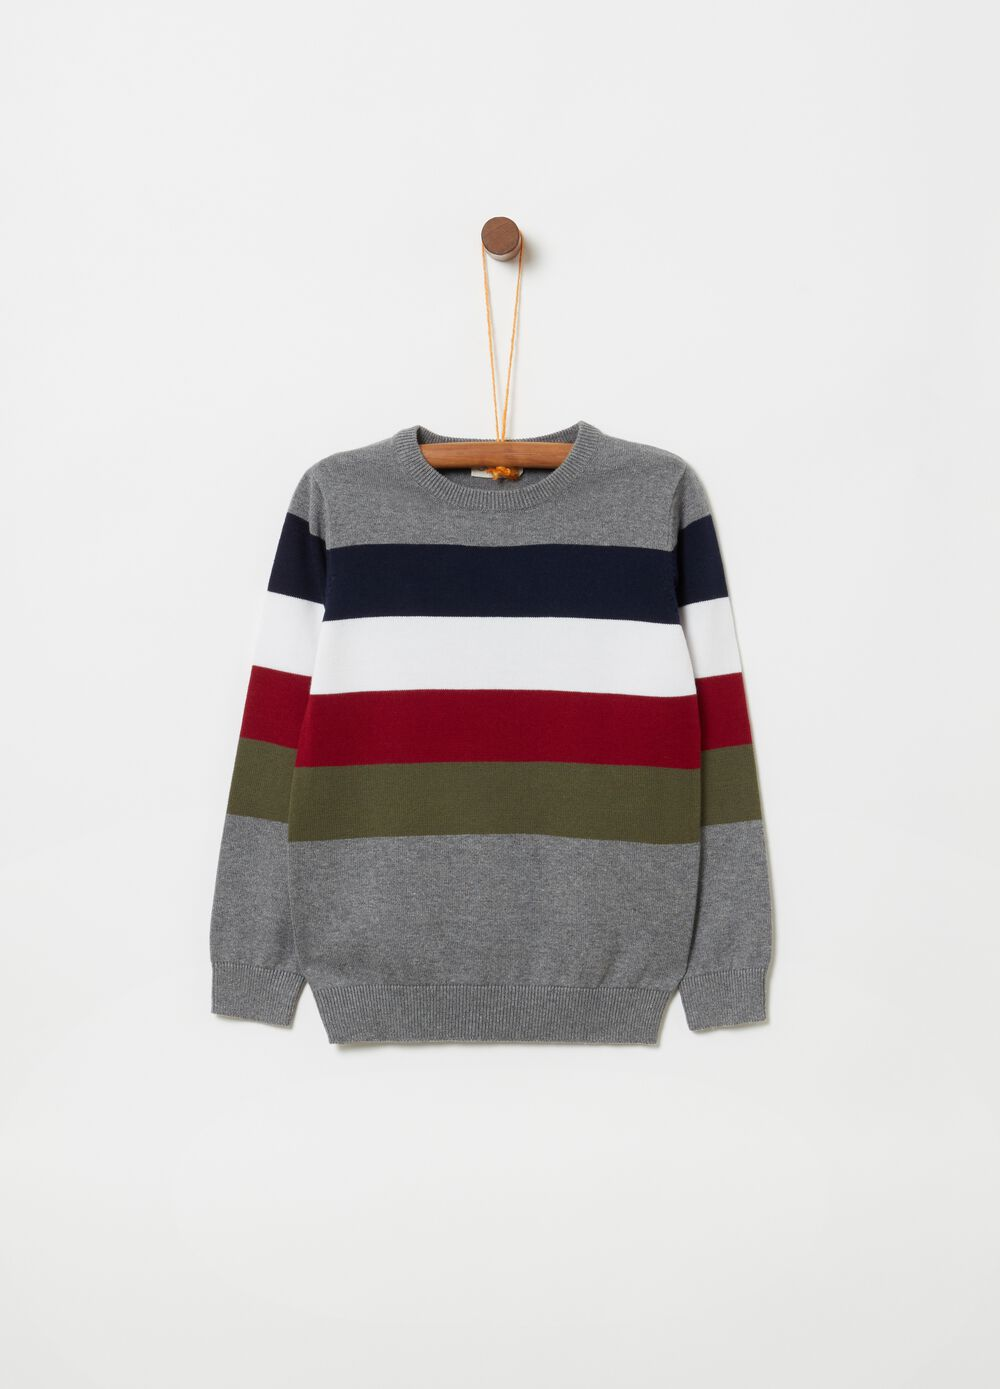 Knitted top with yarn-dyed striped embroidery